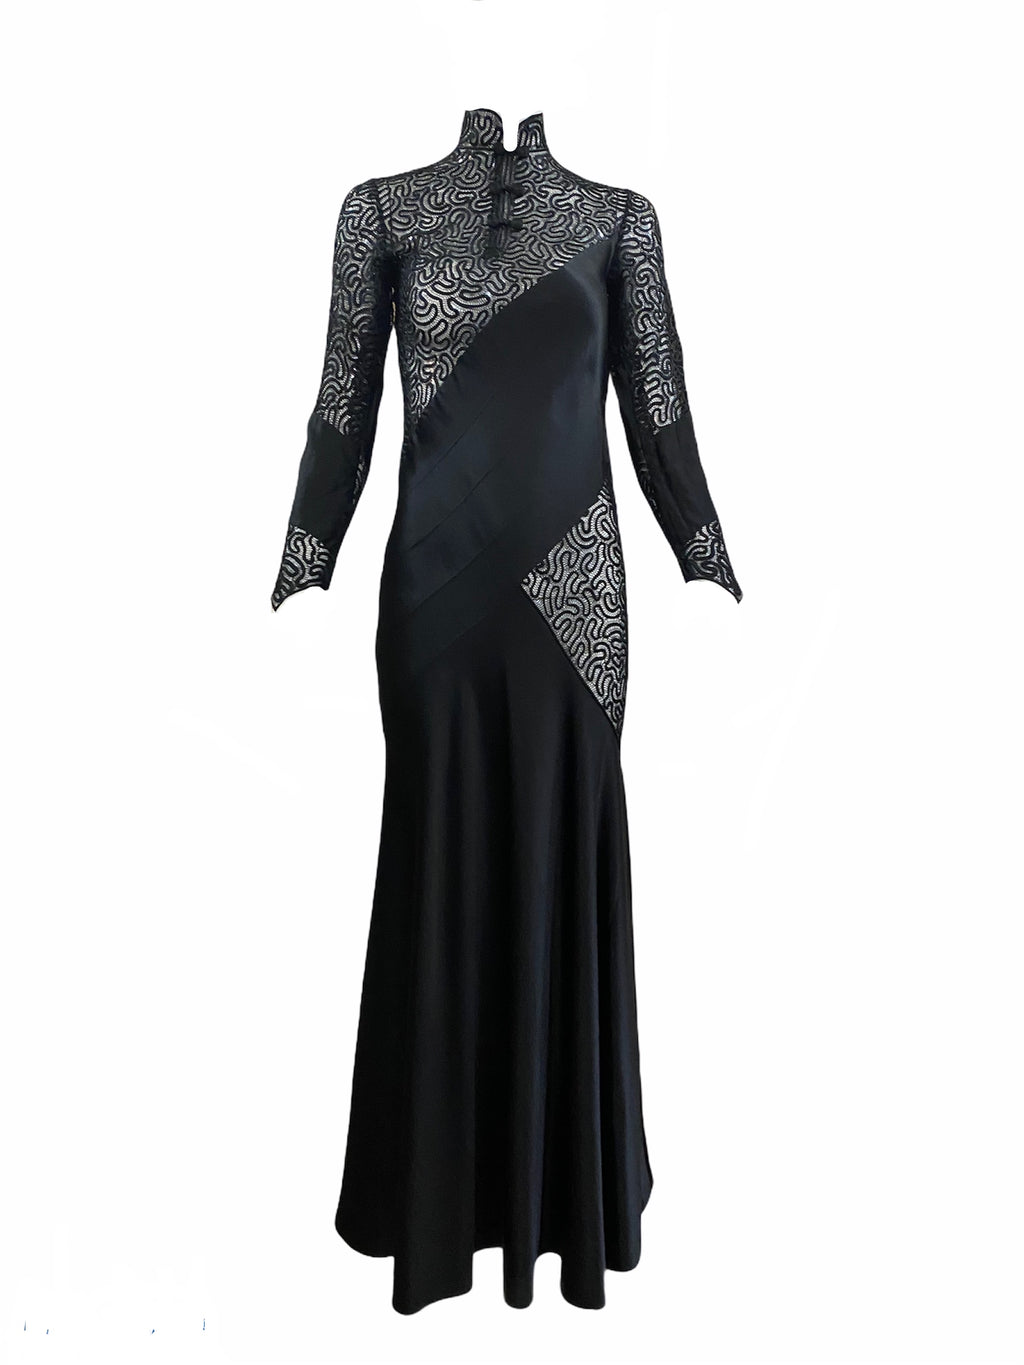 30s Siren Black Satin and Lace Gown FRONT 1 of 5